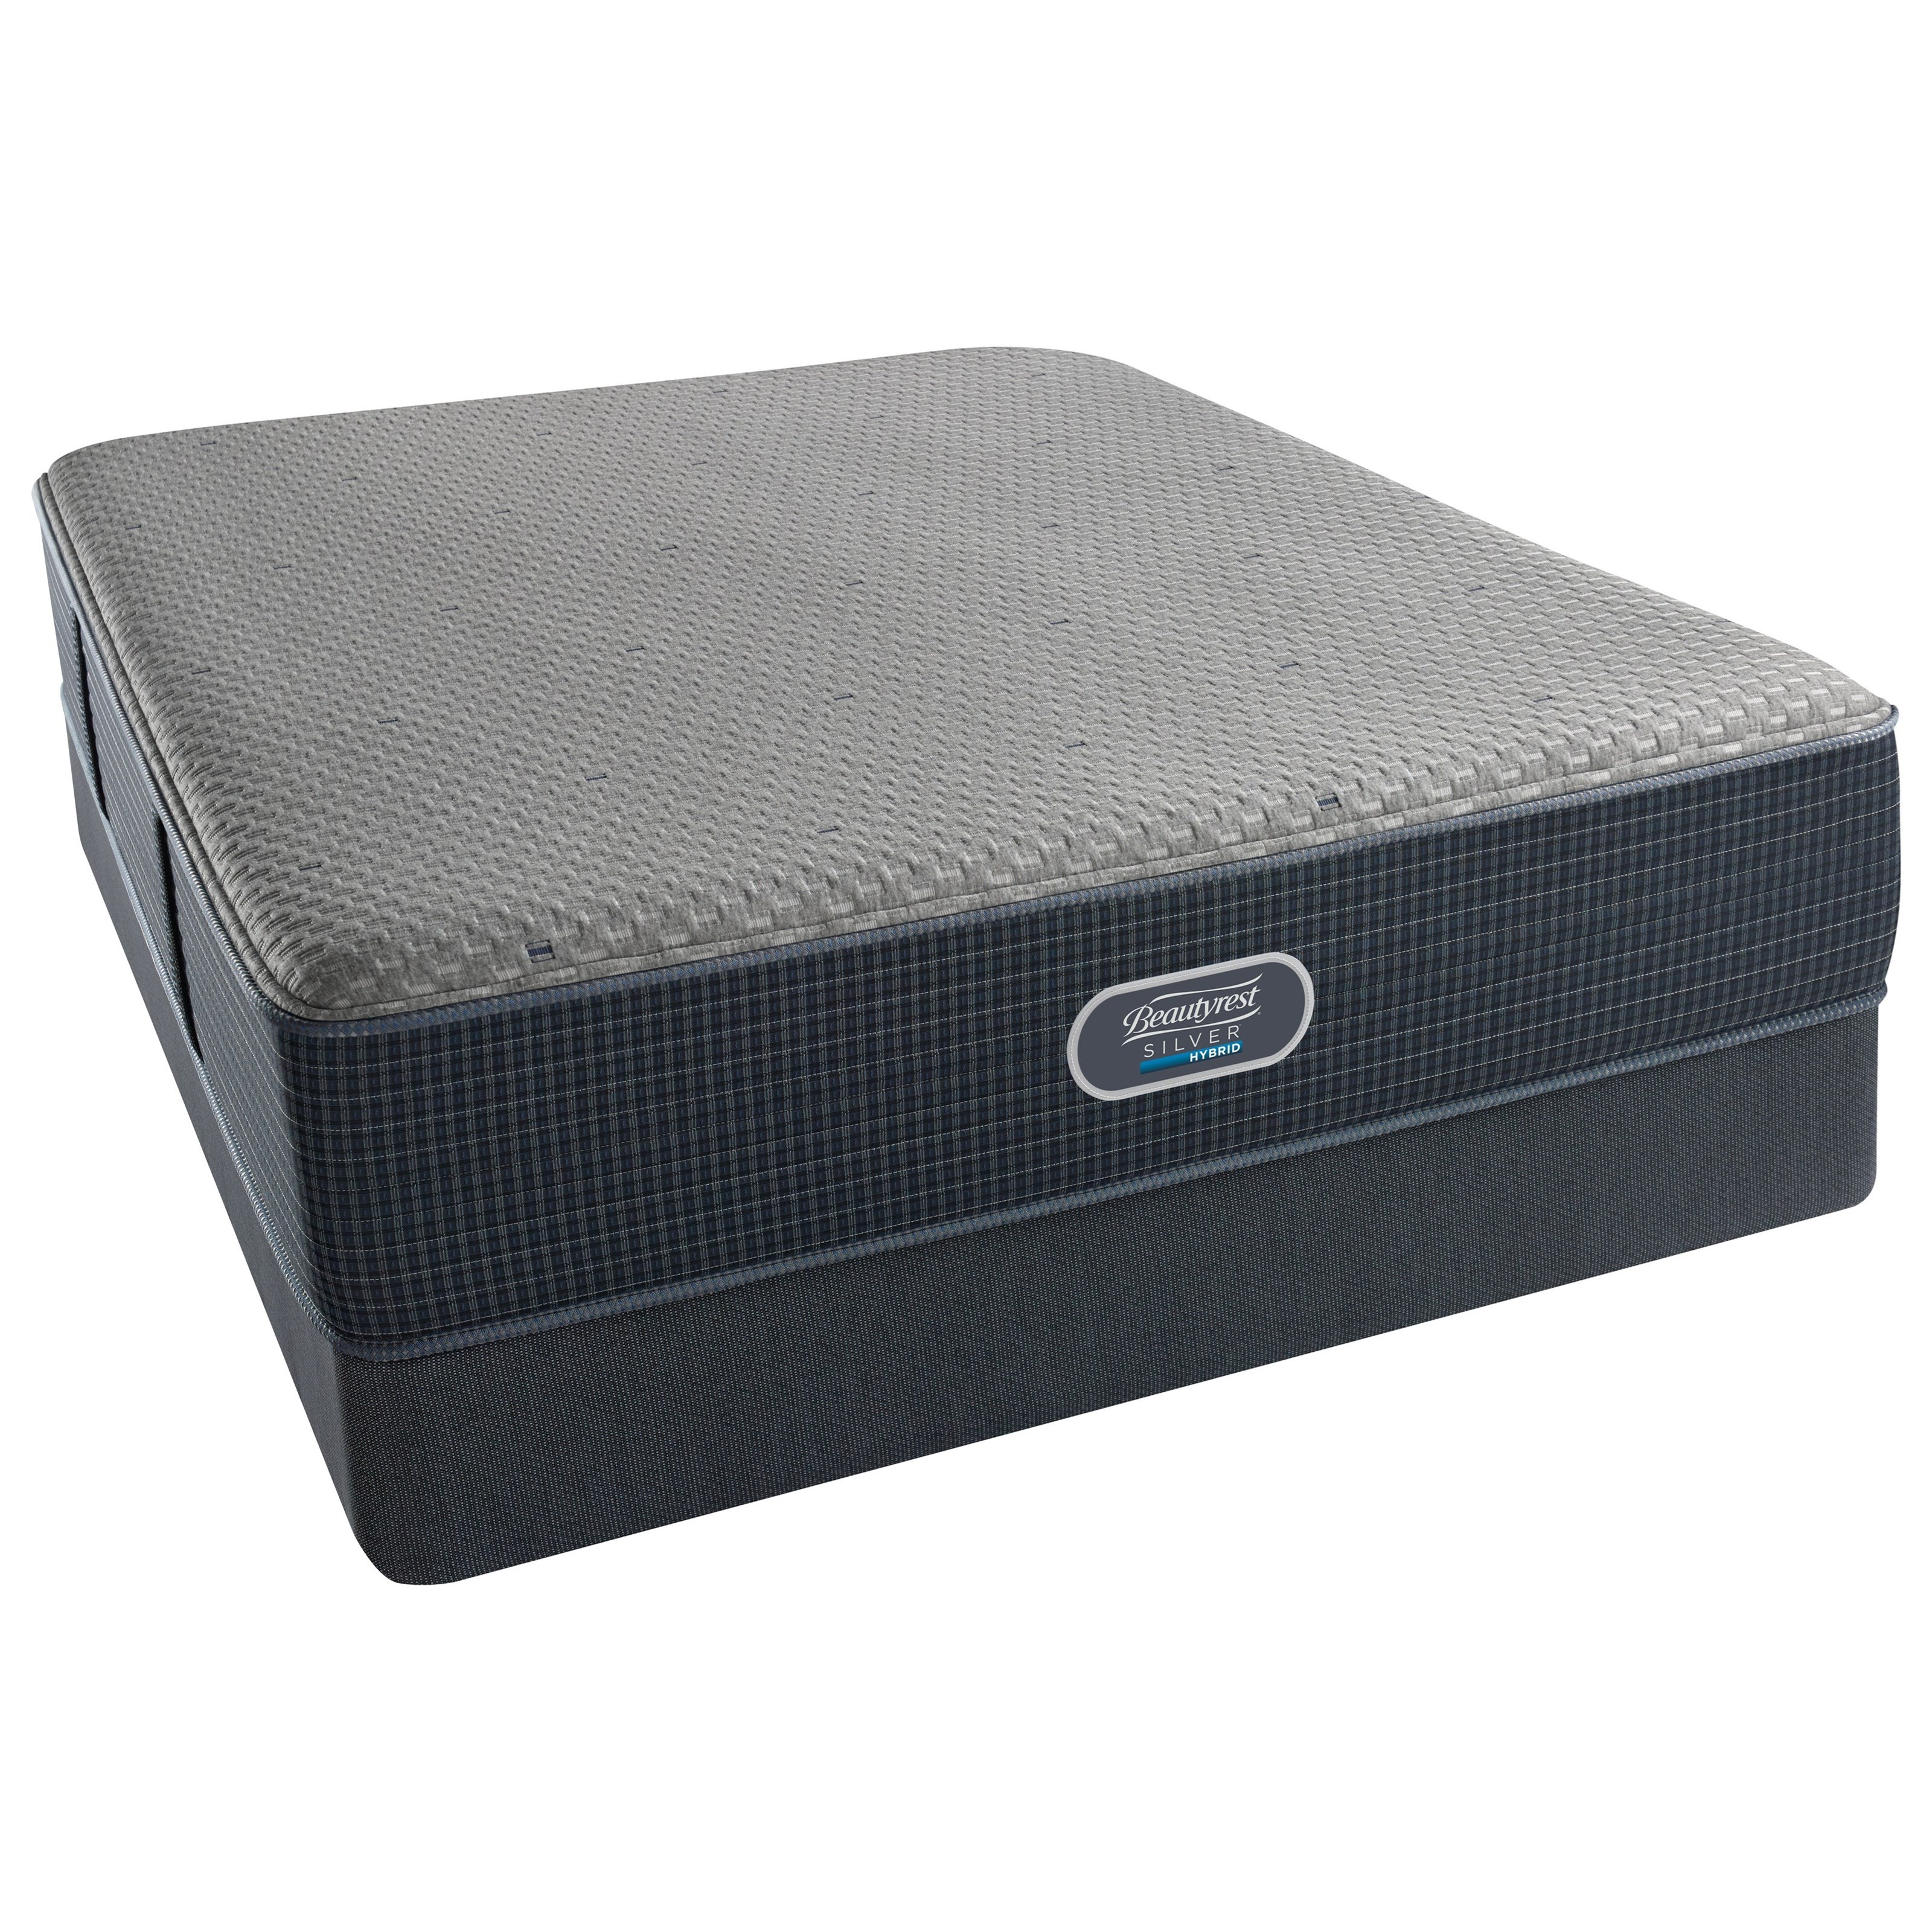 "Beautyrest Silver Hybrid Austin Reef Plush King 13"" Plush Hybrid LP Set - Item Number: 700601001-1060+2x700600254-6020"